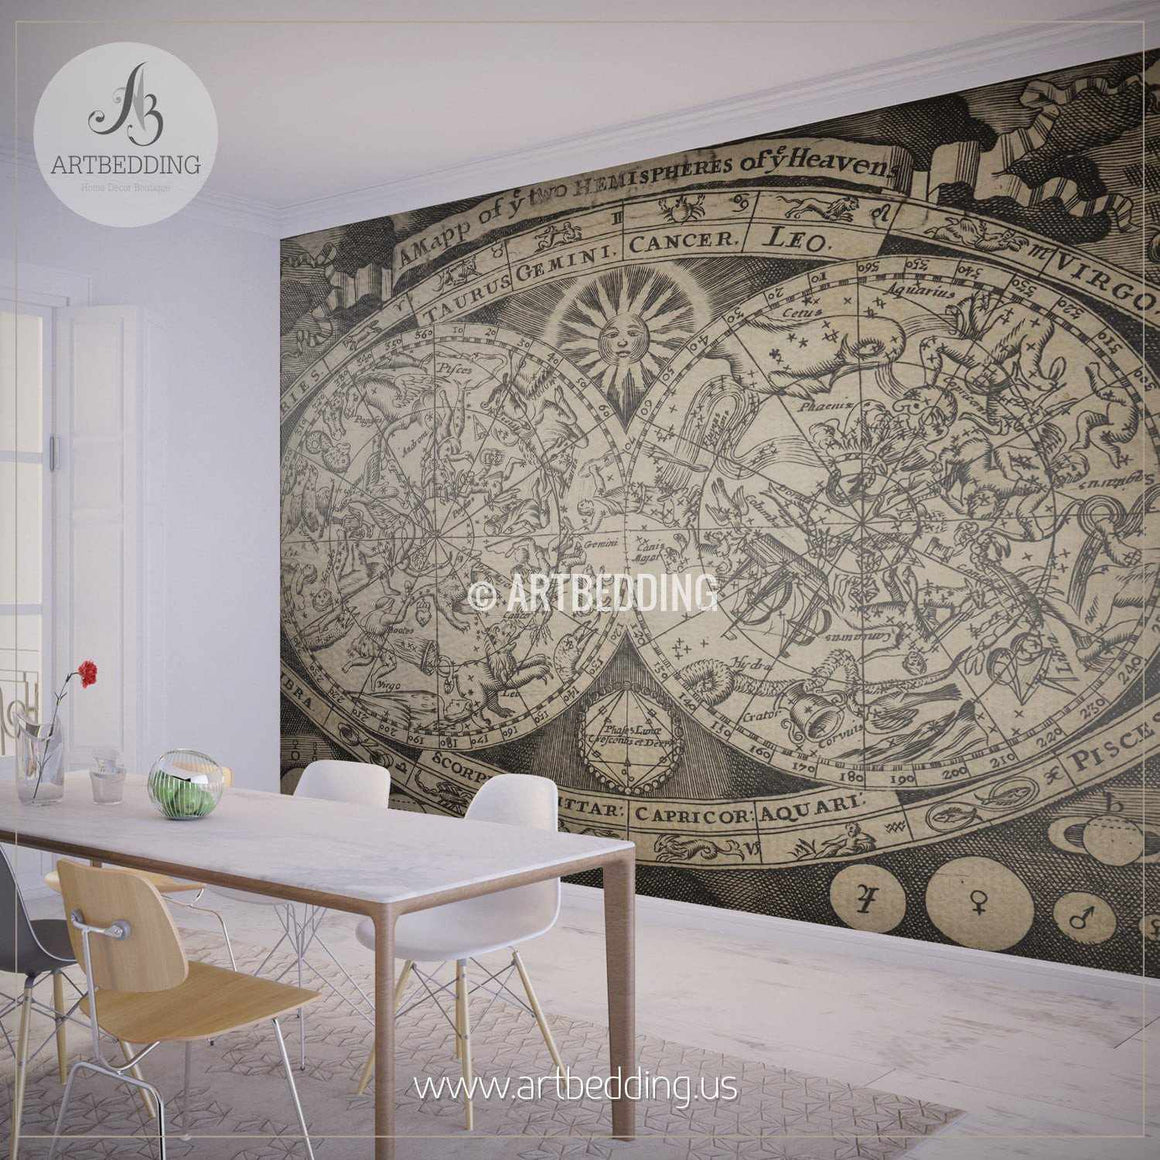 Vintage Astronomical Celestial Map Wall Mural, Self Adhesive Peel & Stick Photo Mural, Atlas wall mural, mural home decor wall mural